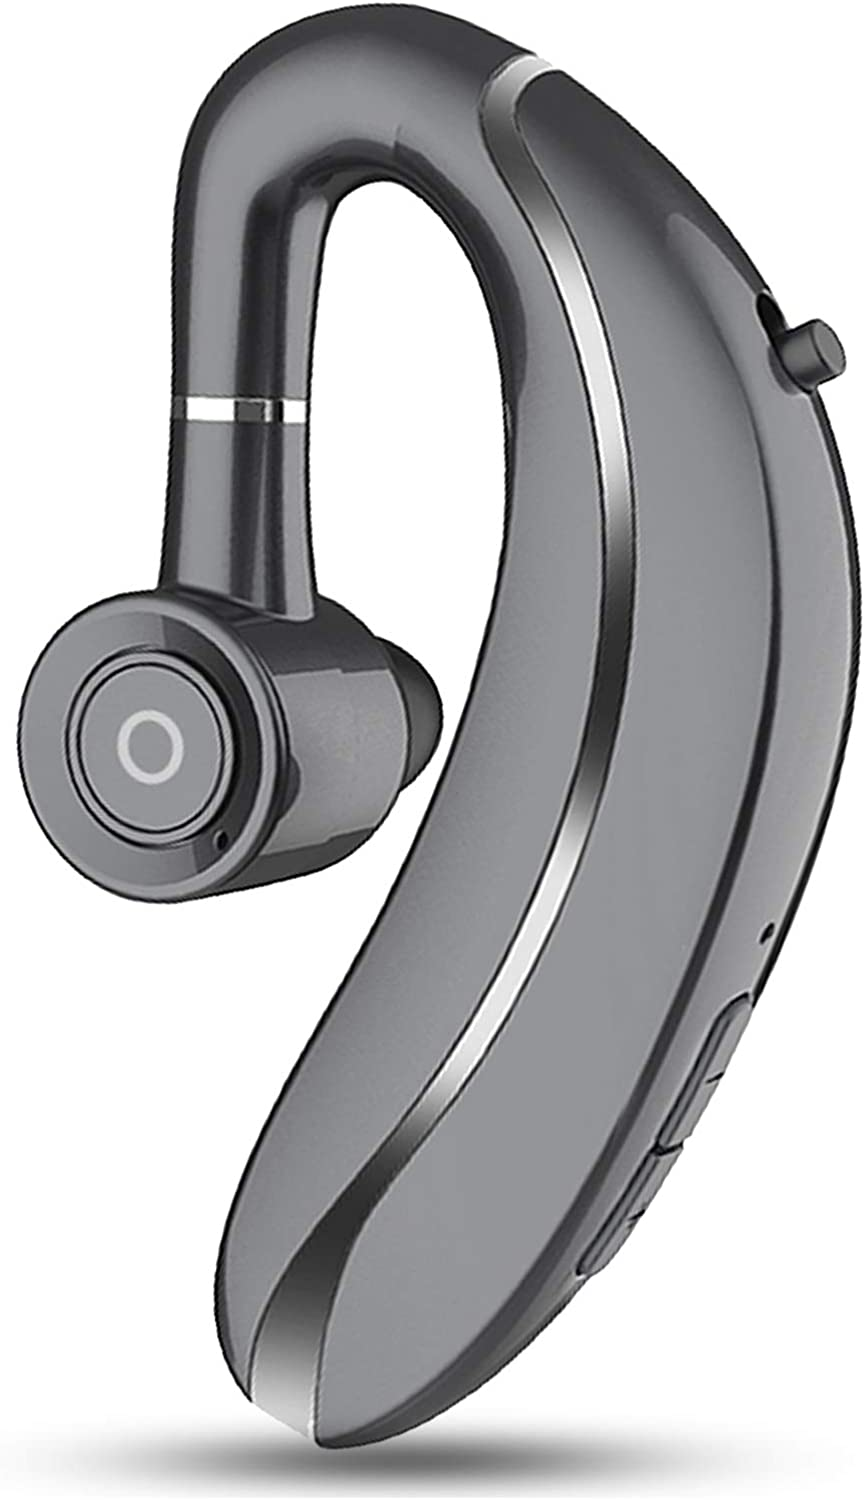 Wireless Bluetooth Headset Earpiece 5.0 Handsfree Earphone 20 Hours Playtime Noise Cancelling Earbud with Mic Compatible Left or Right Ear Cell Phones Android iPhone Car Trucker Driver Office (Grey)